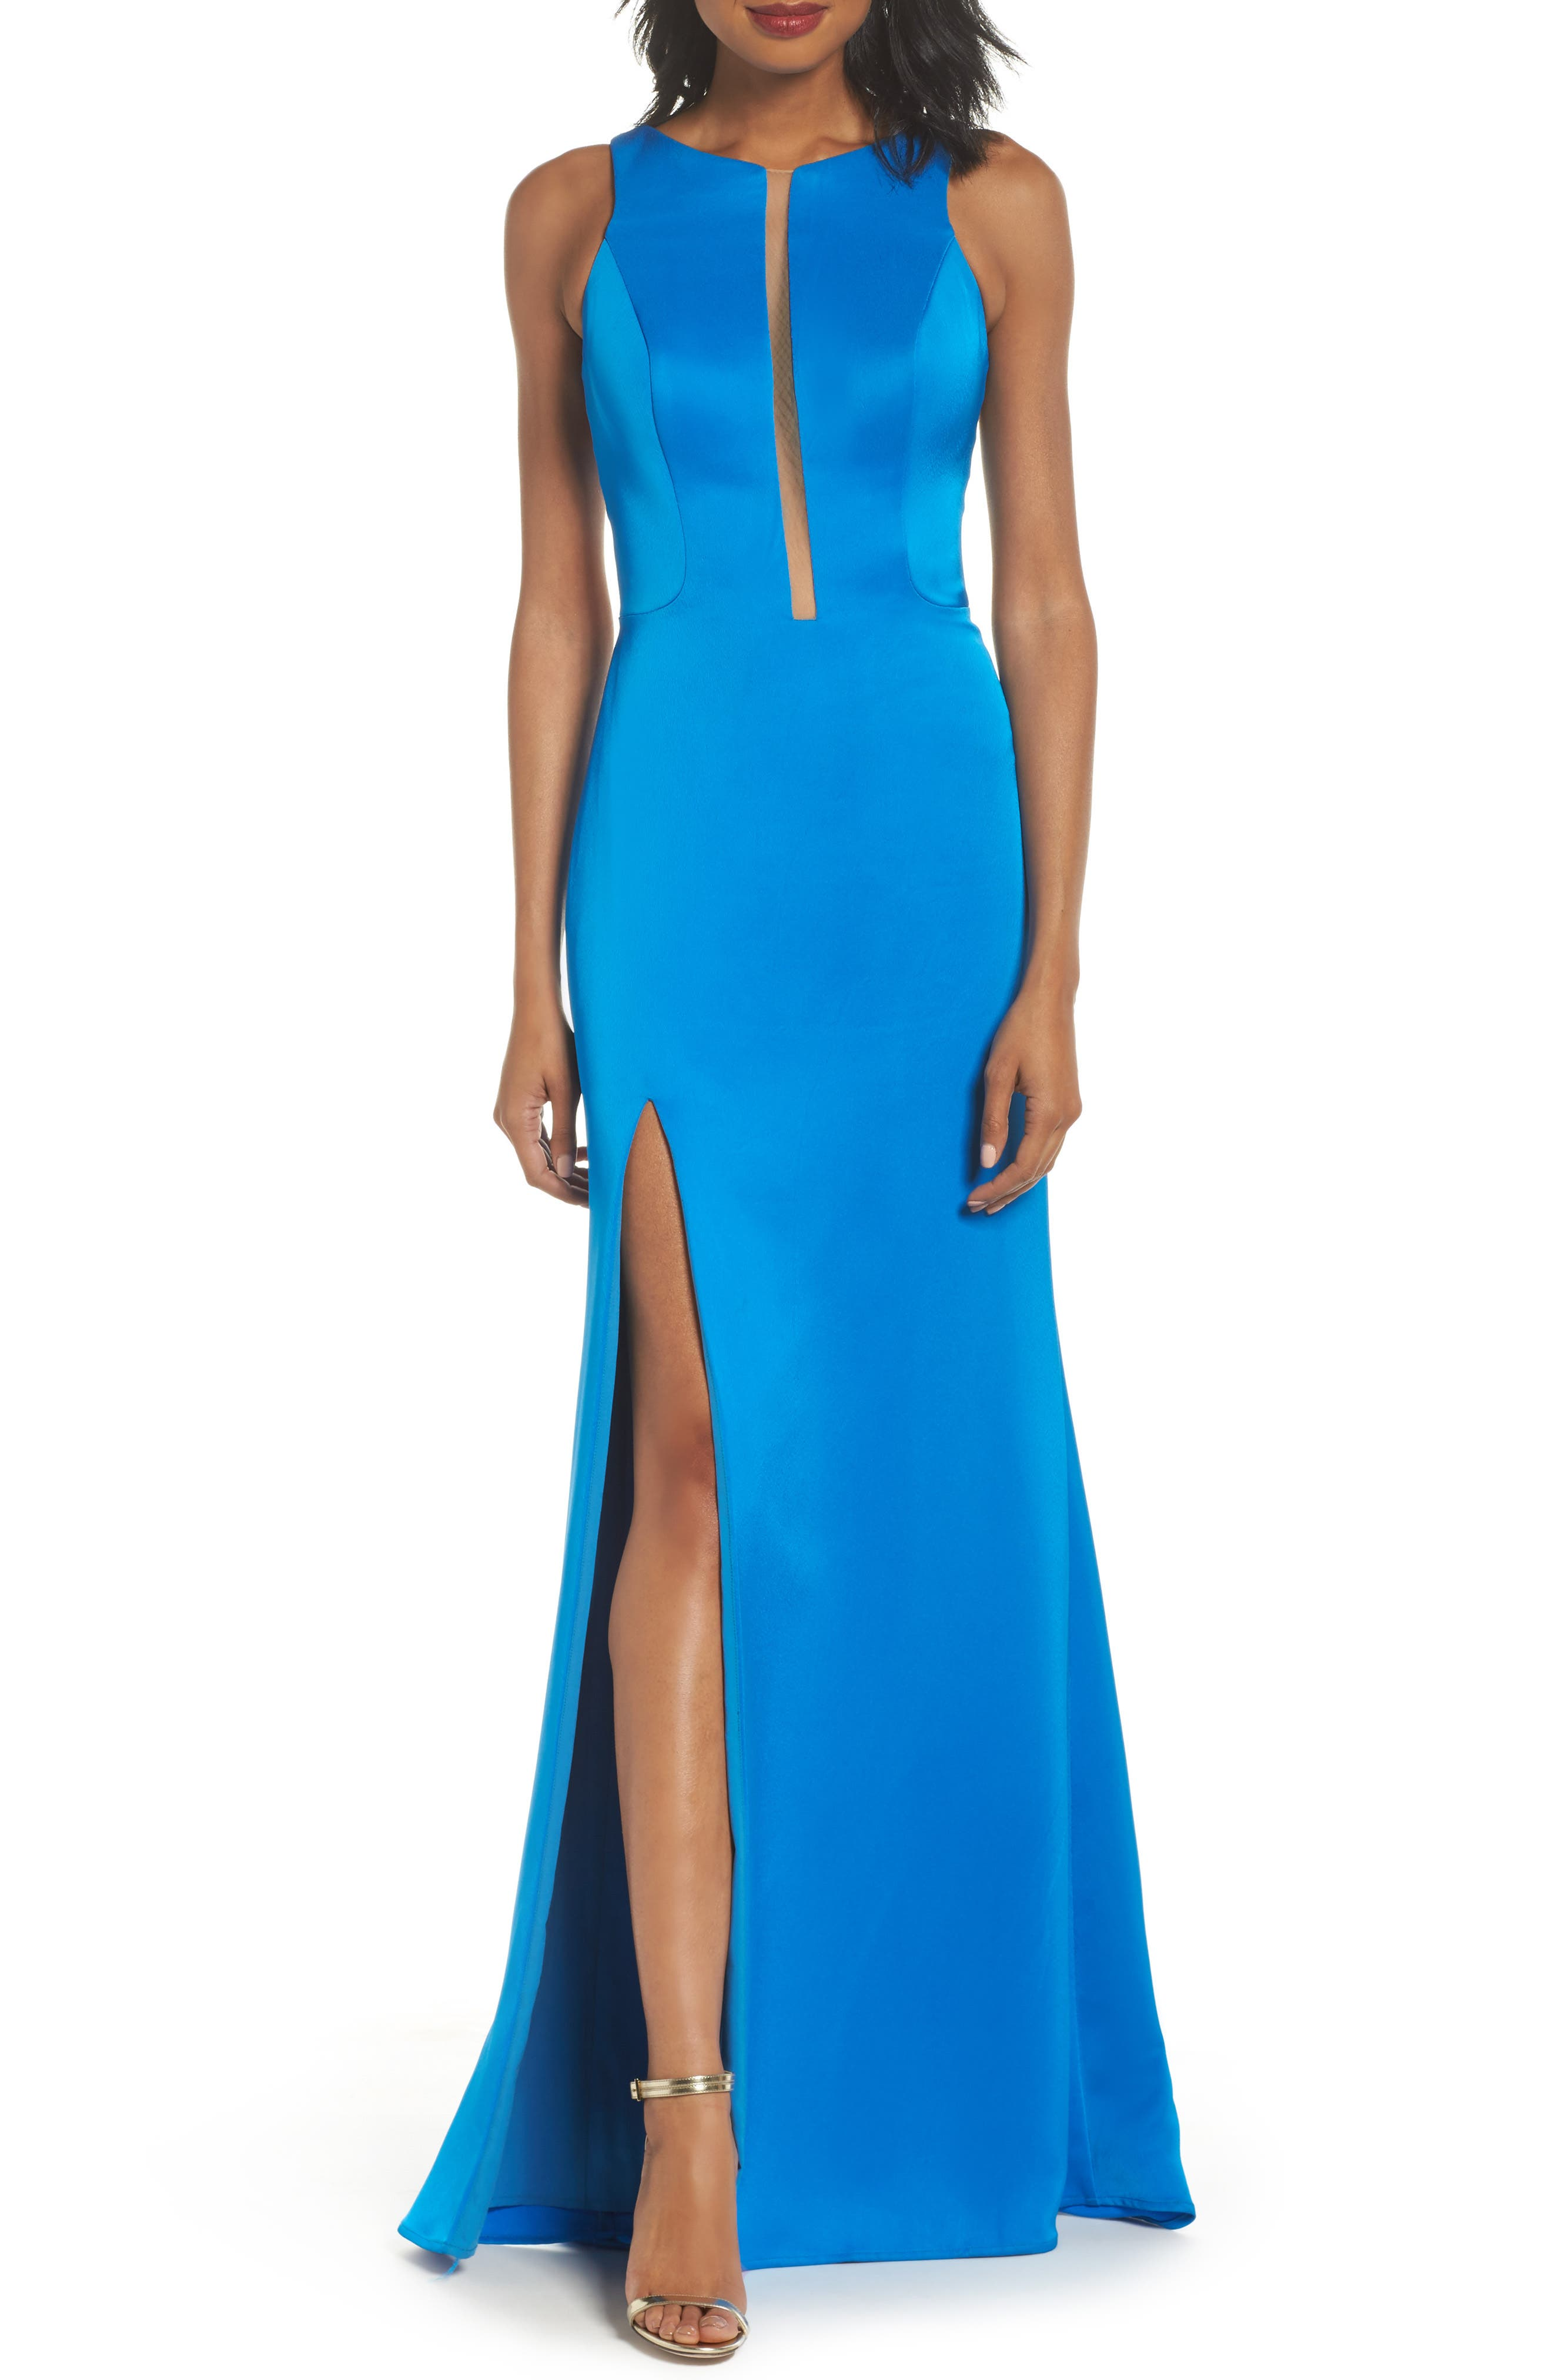 Cage Back Satin Gown,                             Main thumbnail 1, color,                             400